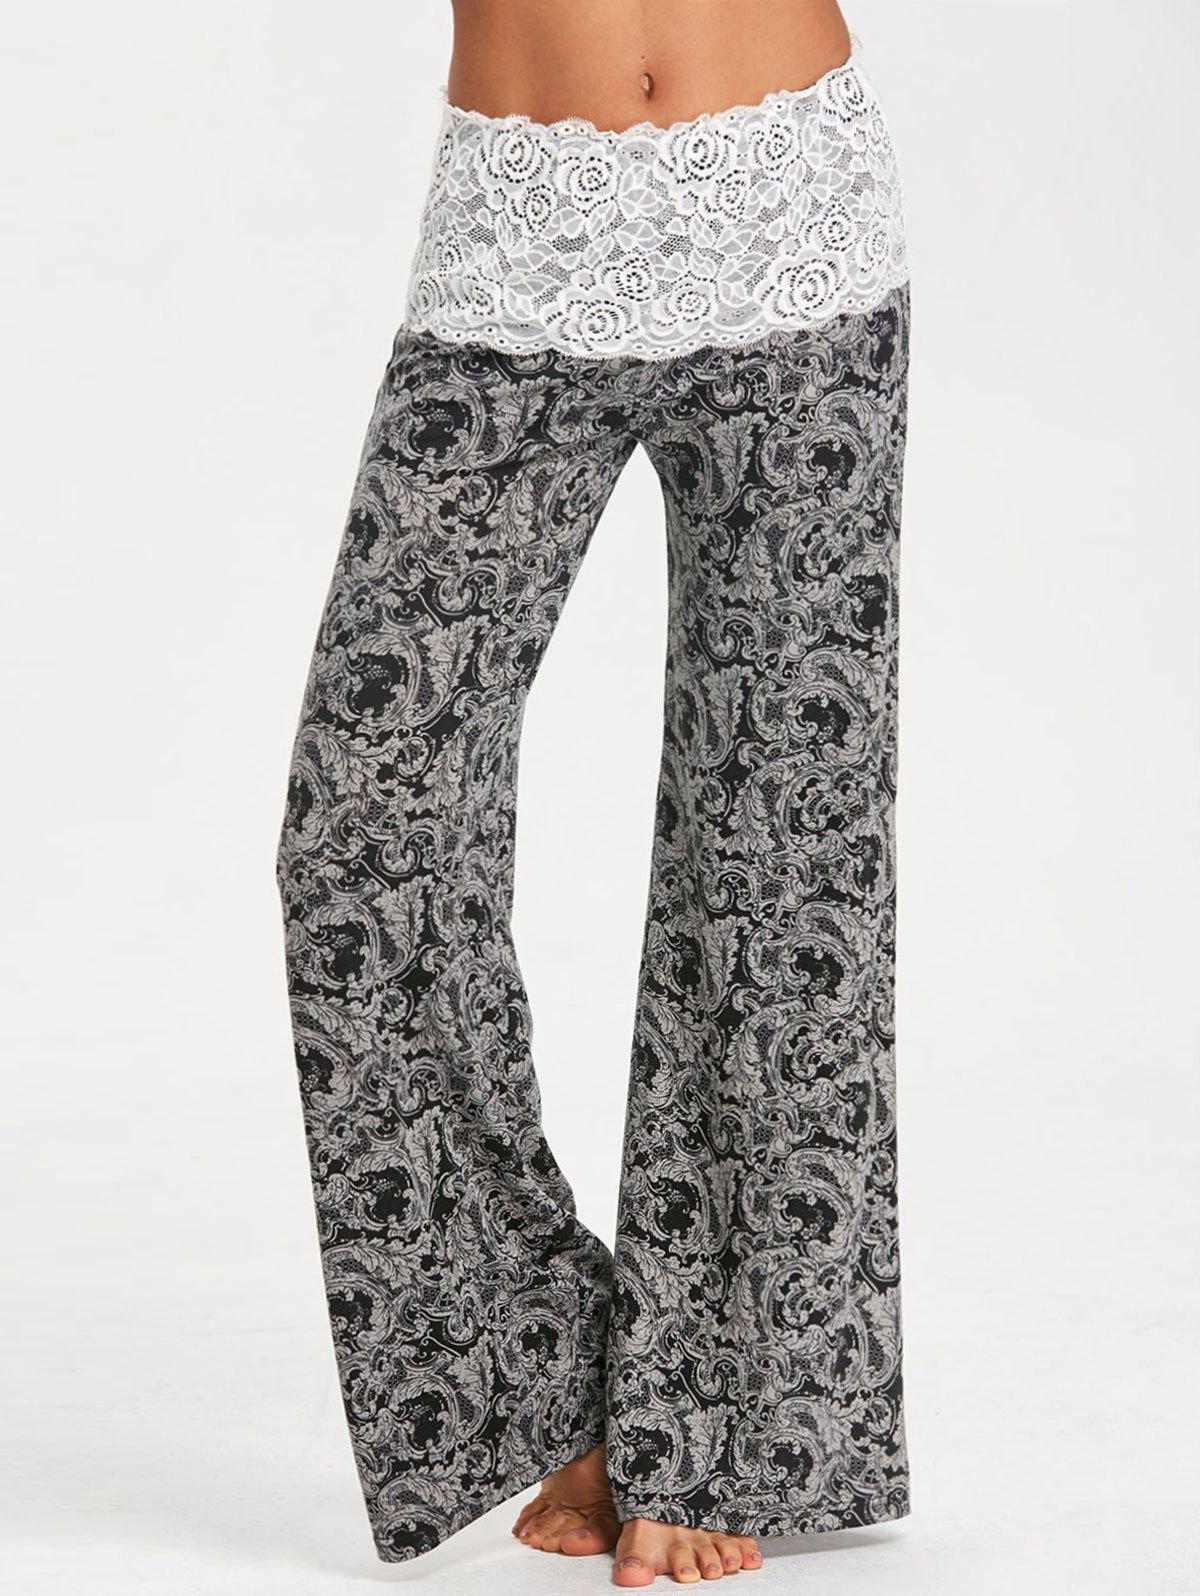 Bandana Floral Lace Waistband Palazzo Pants - WHITE/BLACK XL